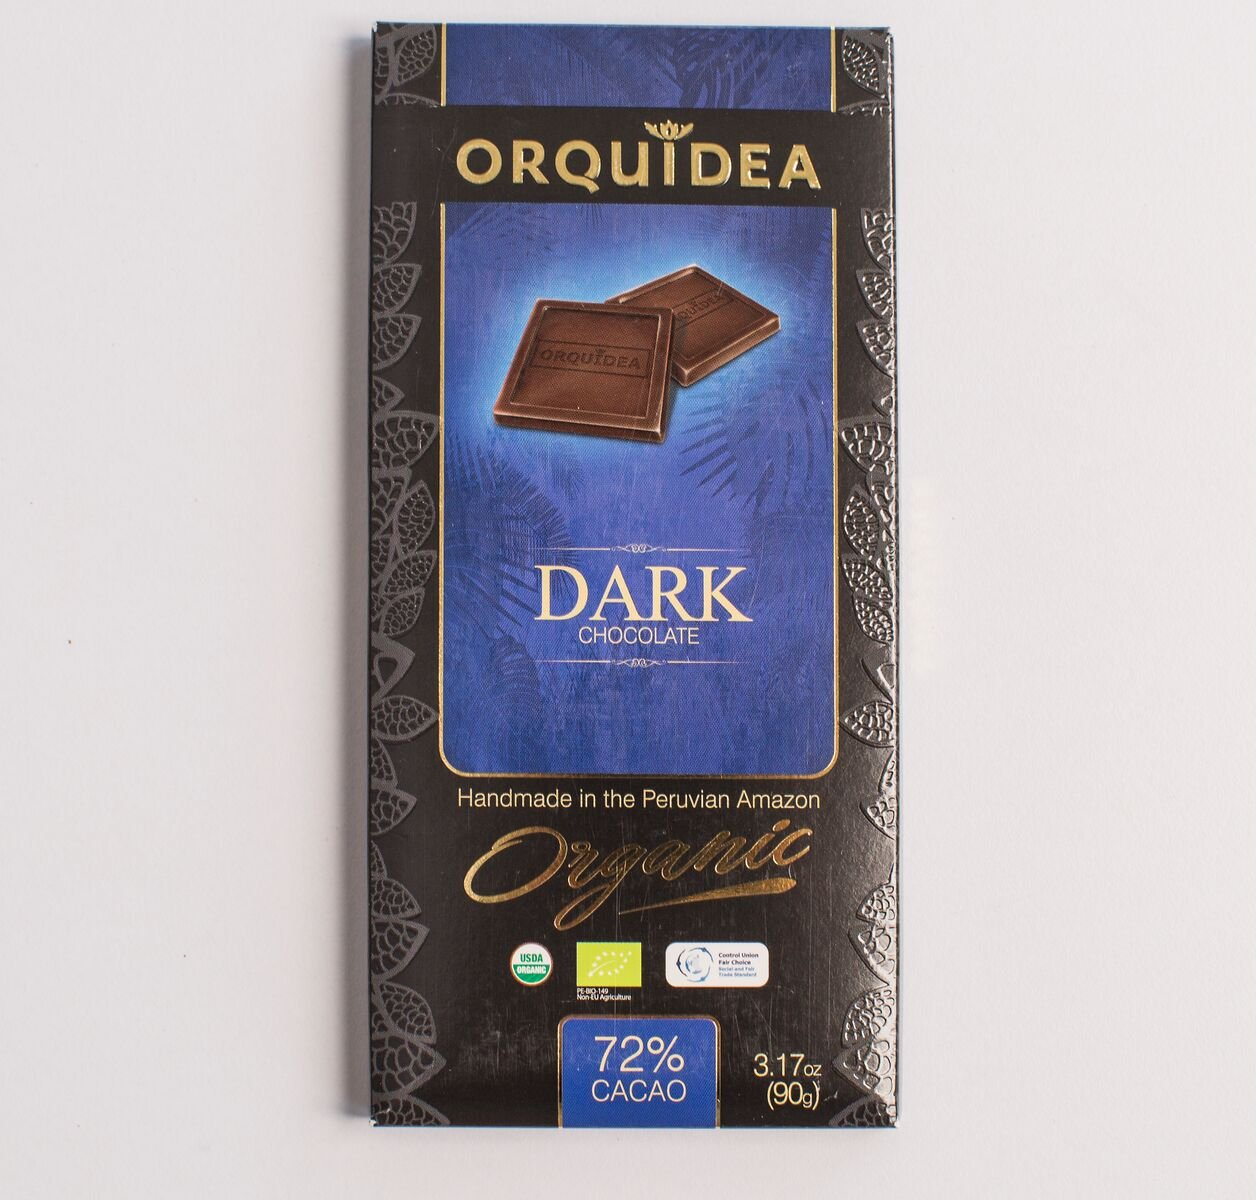 f22aff0a4b2977 Amazon.com   Delightfully Dark Chocolate Peruvian Chocolate by Orquidea    Grocery   Gourmet Food